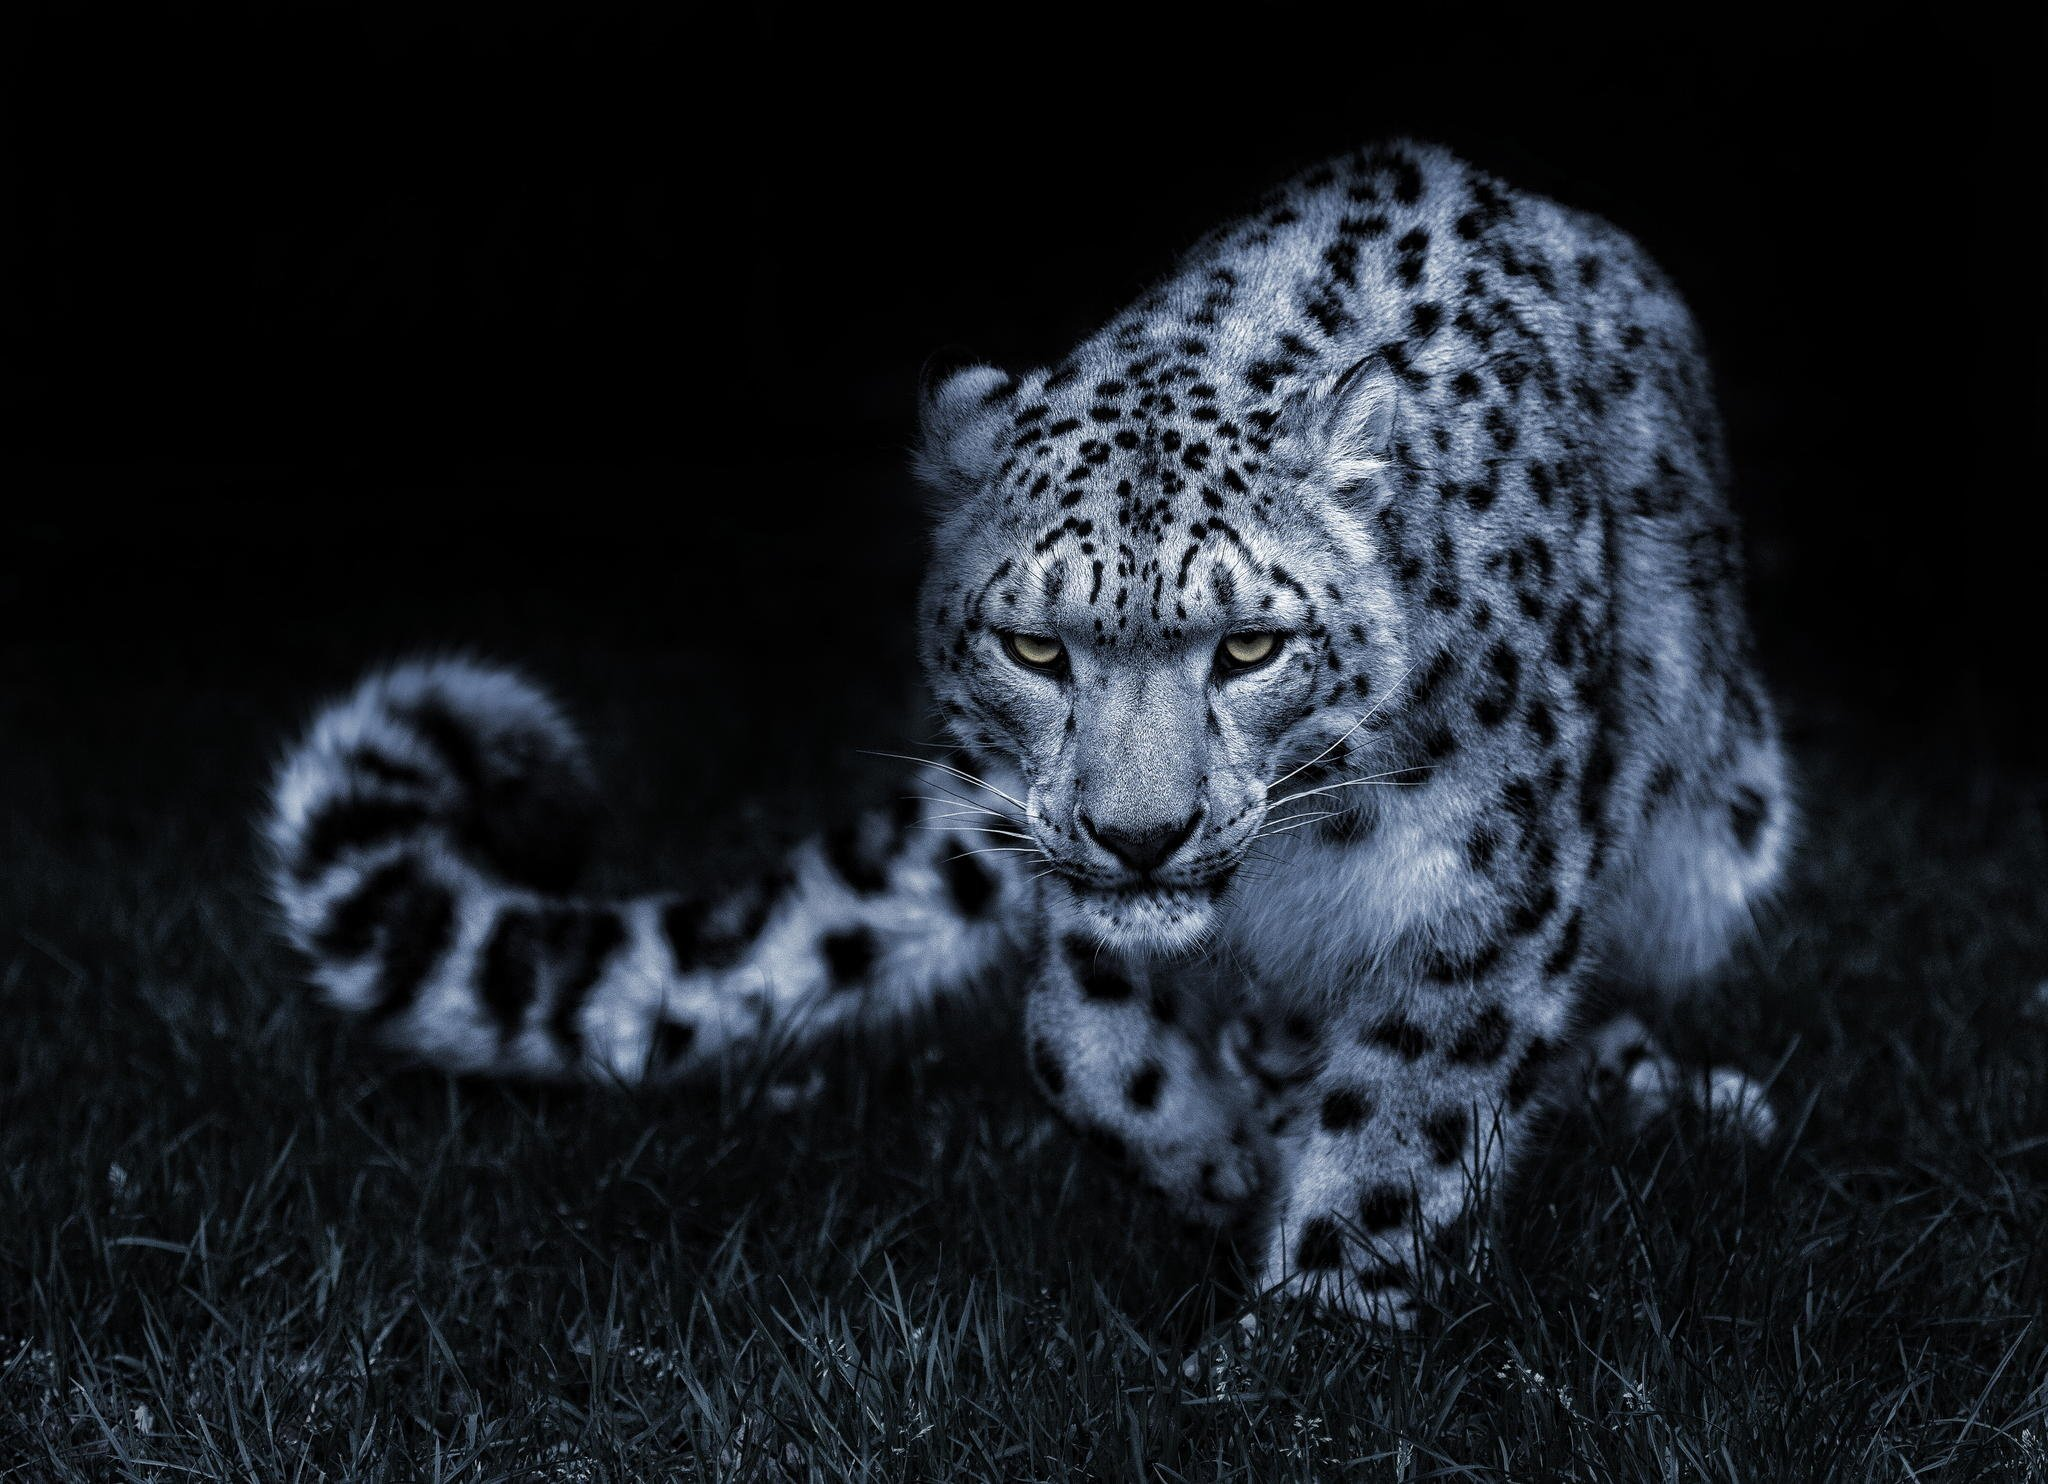 Snow Leopard Black And White Posture Eyes Cat Wallpaper 2048x1484 348888 Wallpaperup